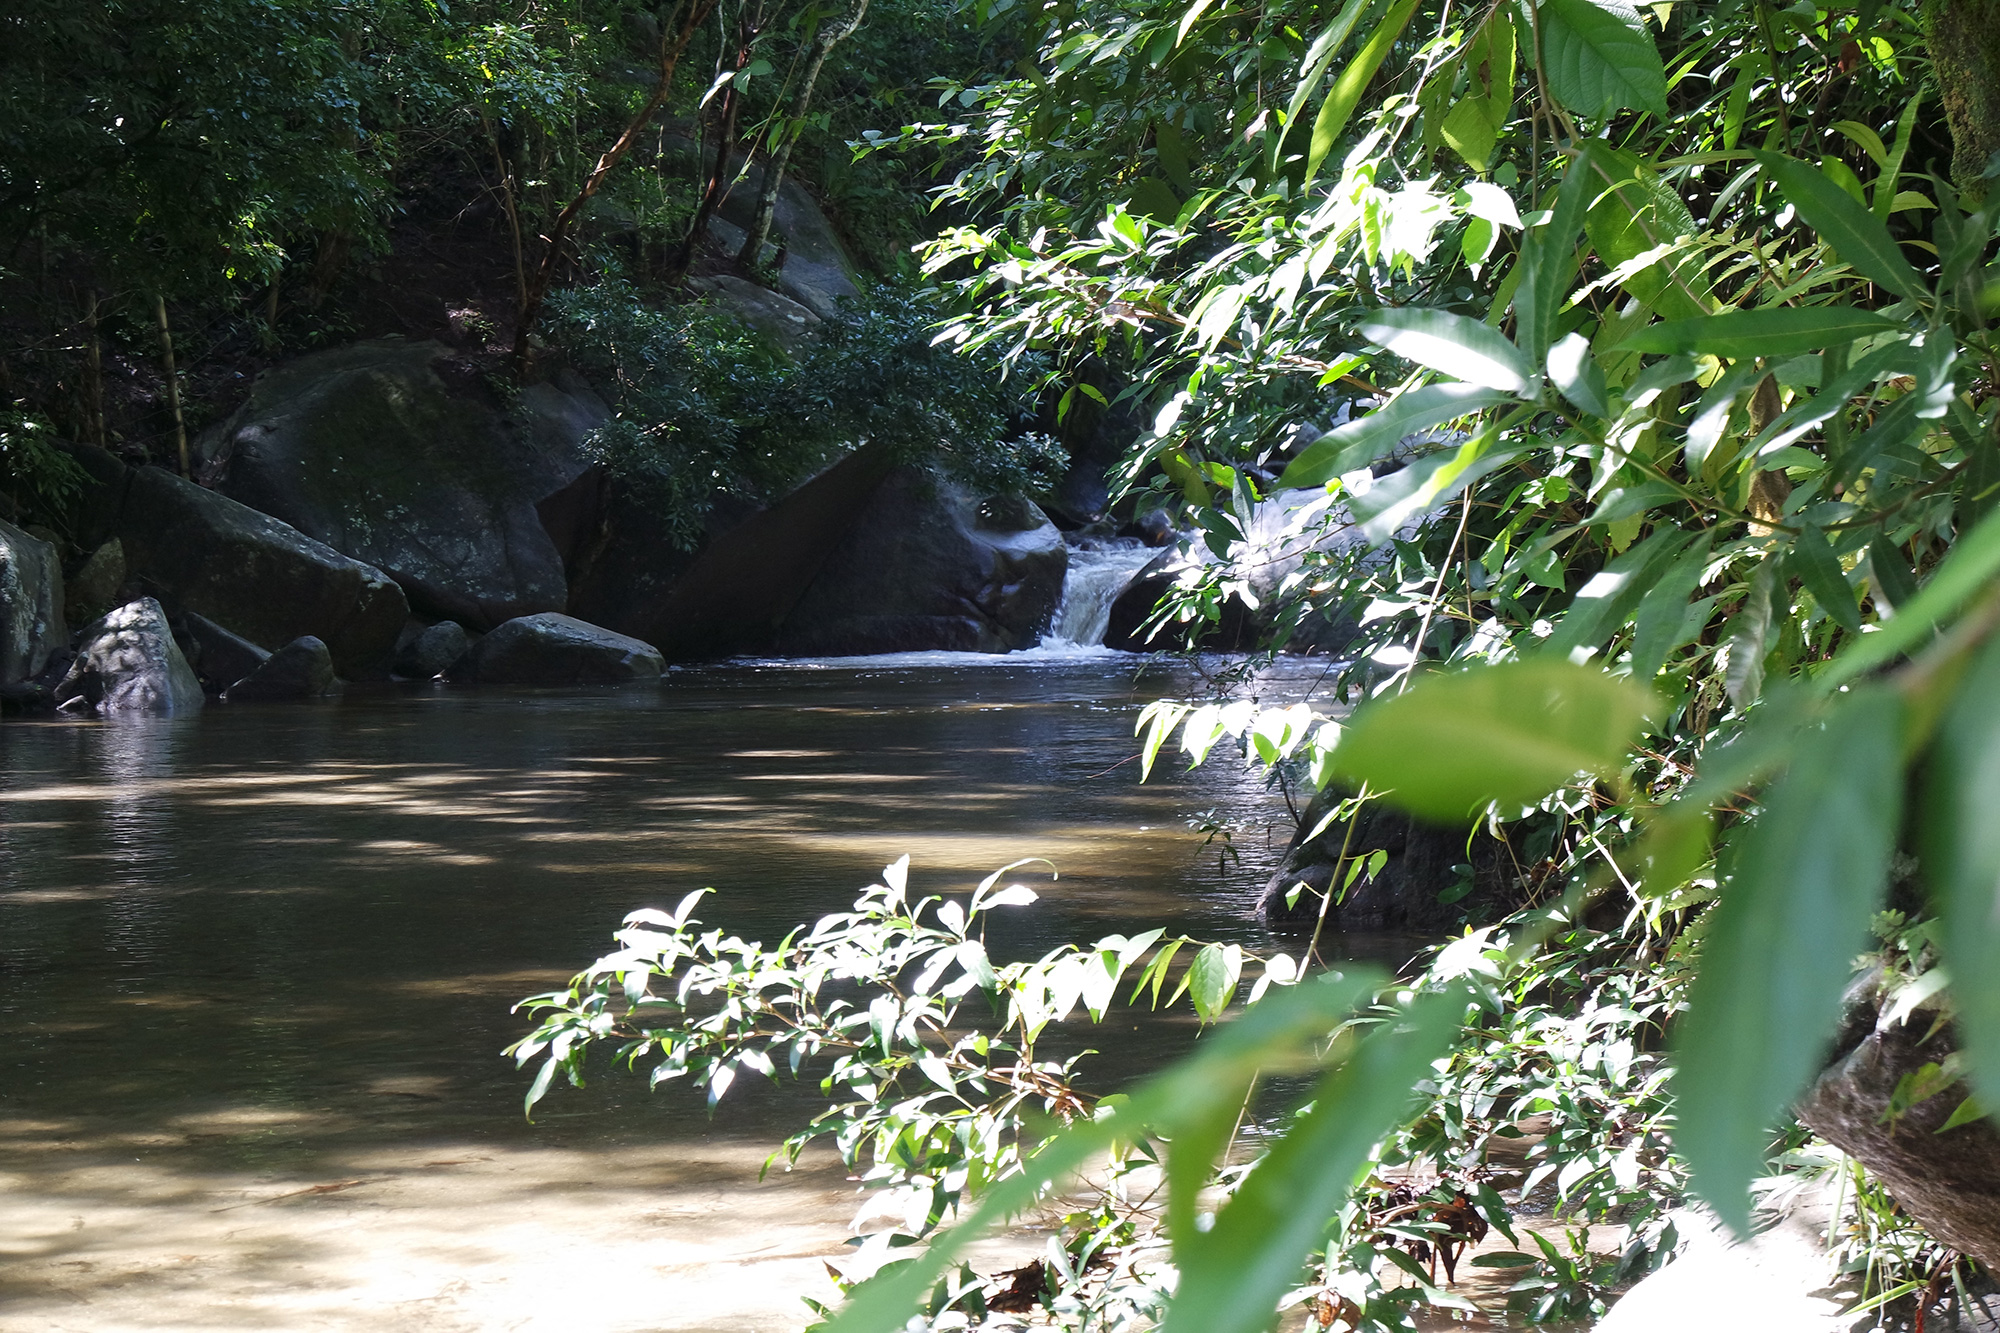 Swimming Spot of Paso del Mango